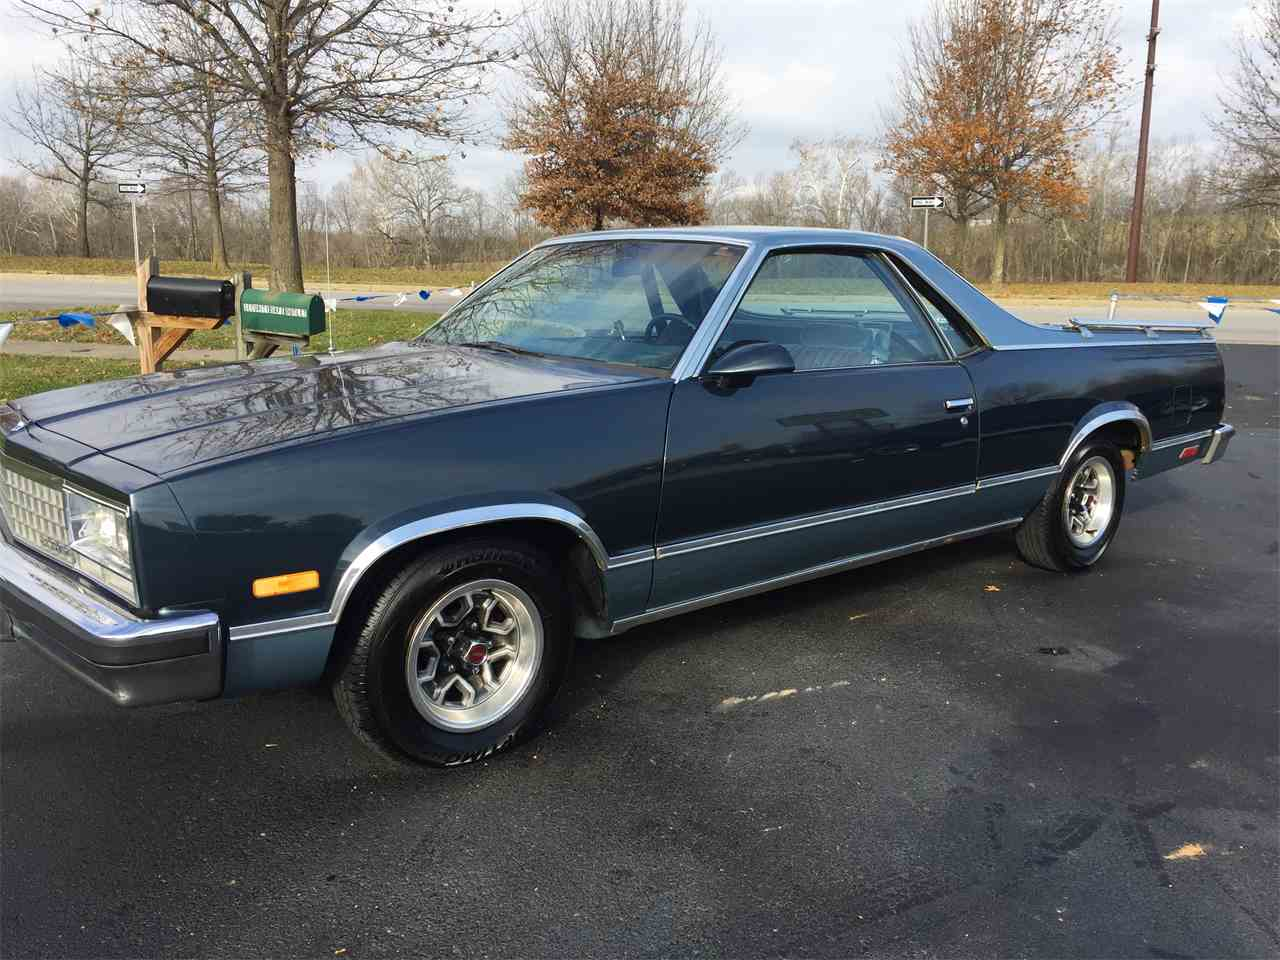 Large Picture of '86 Chevrolet El Camino - $7,500.00 - MFS4